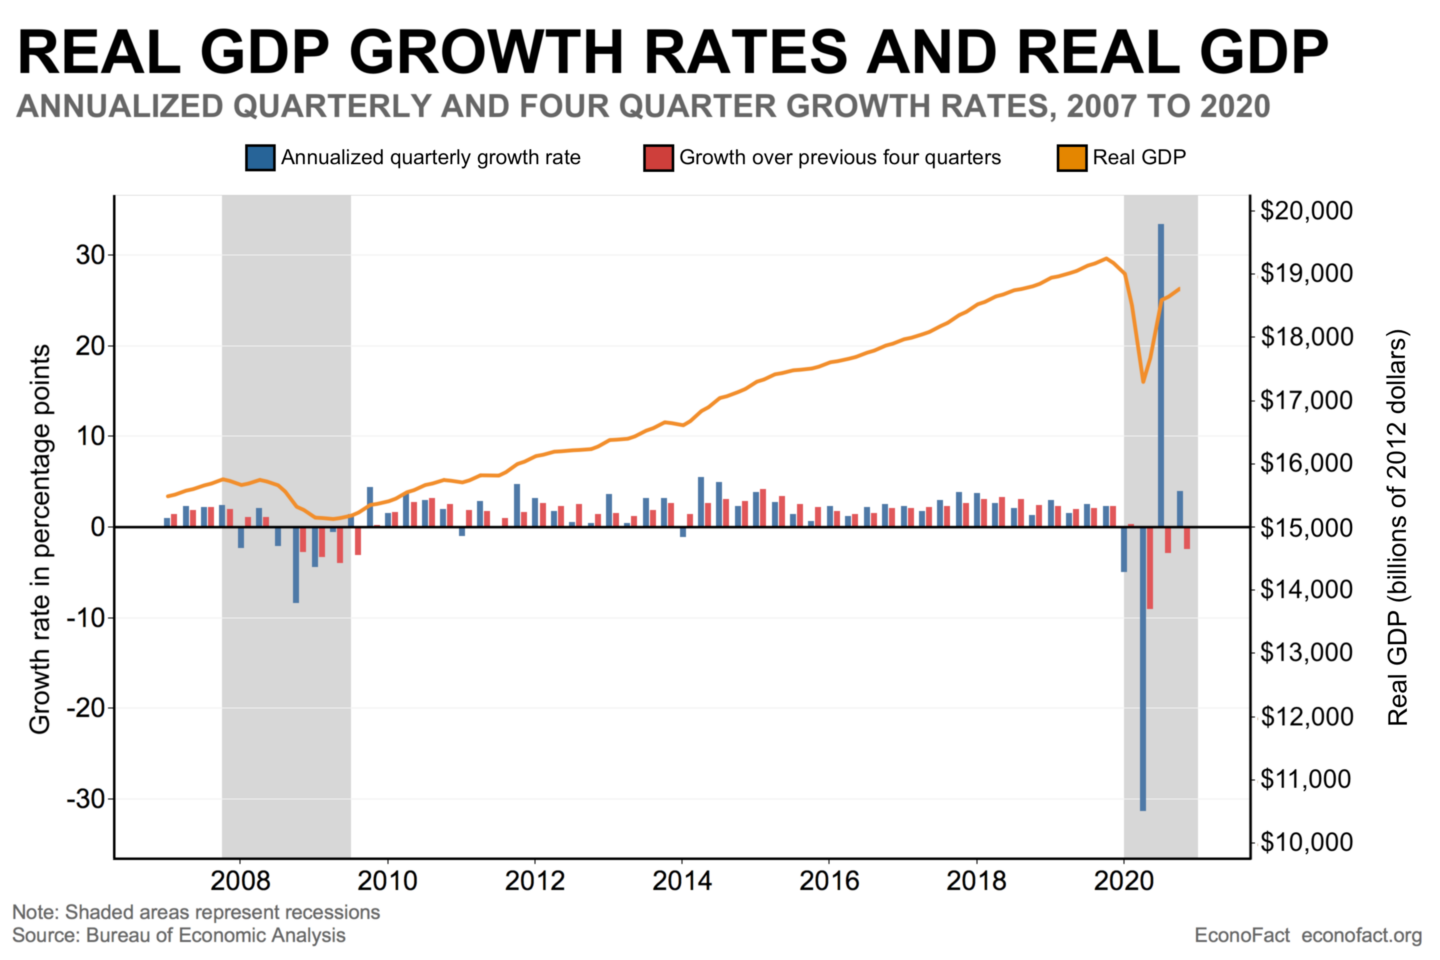 How Should We Think About 2020 GDP Growth?